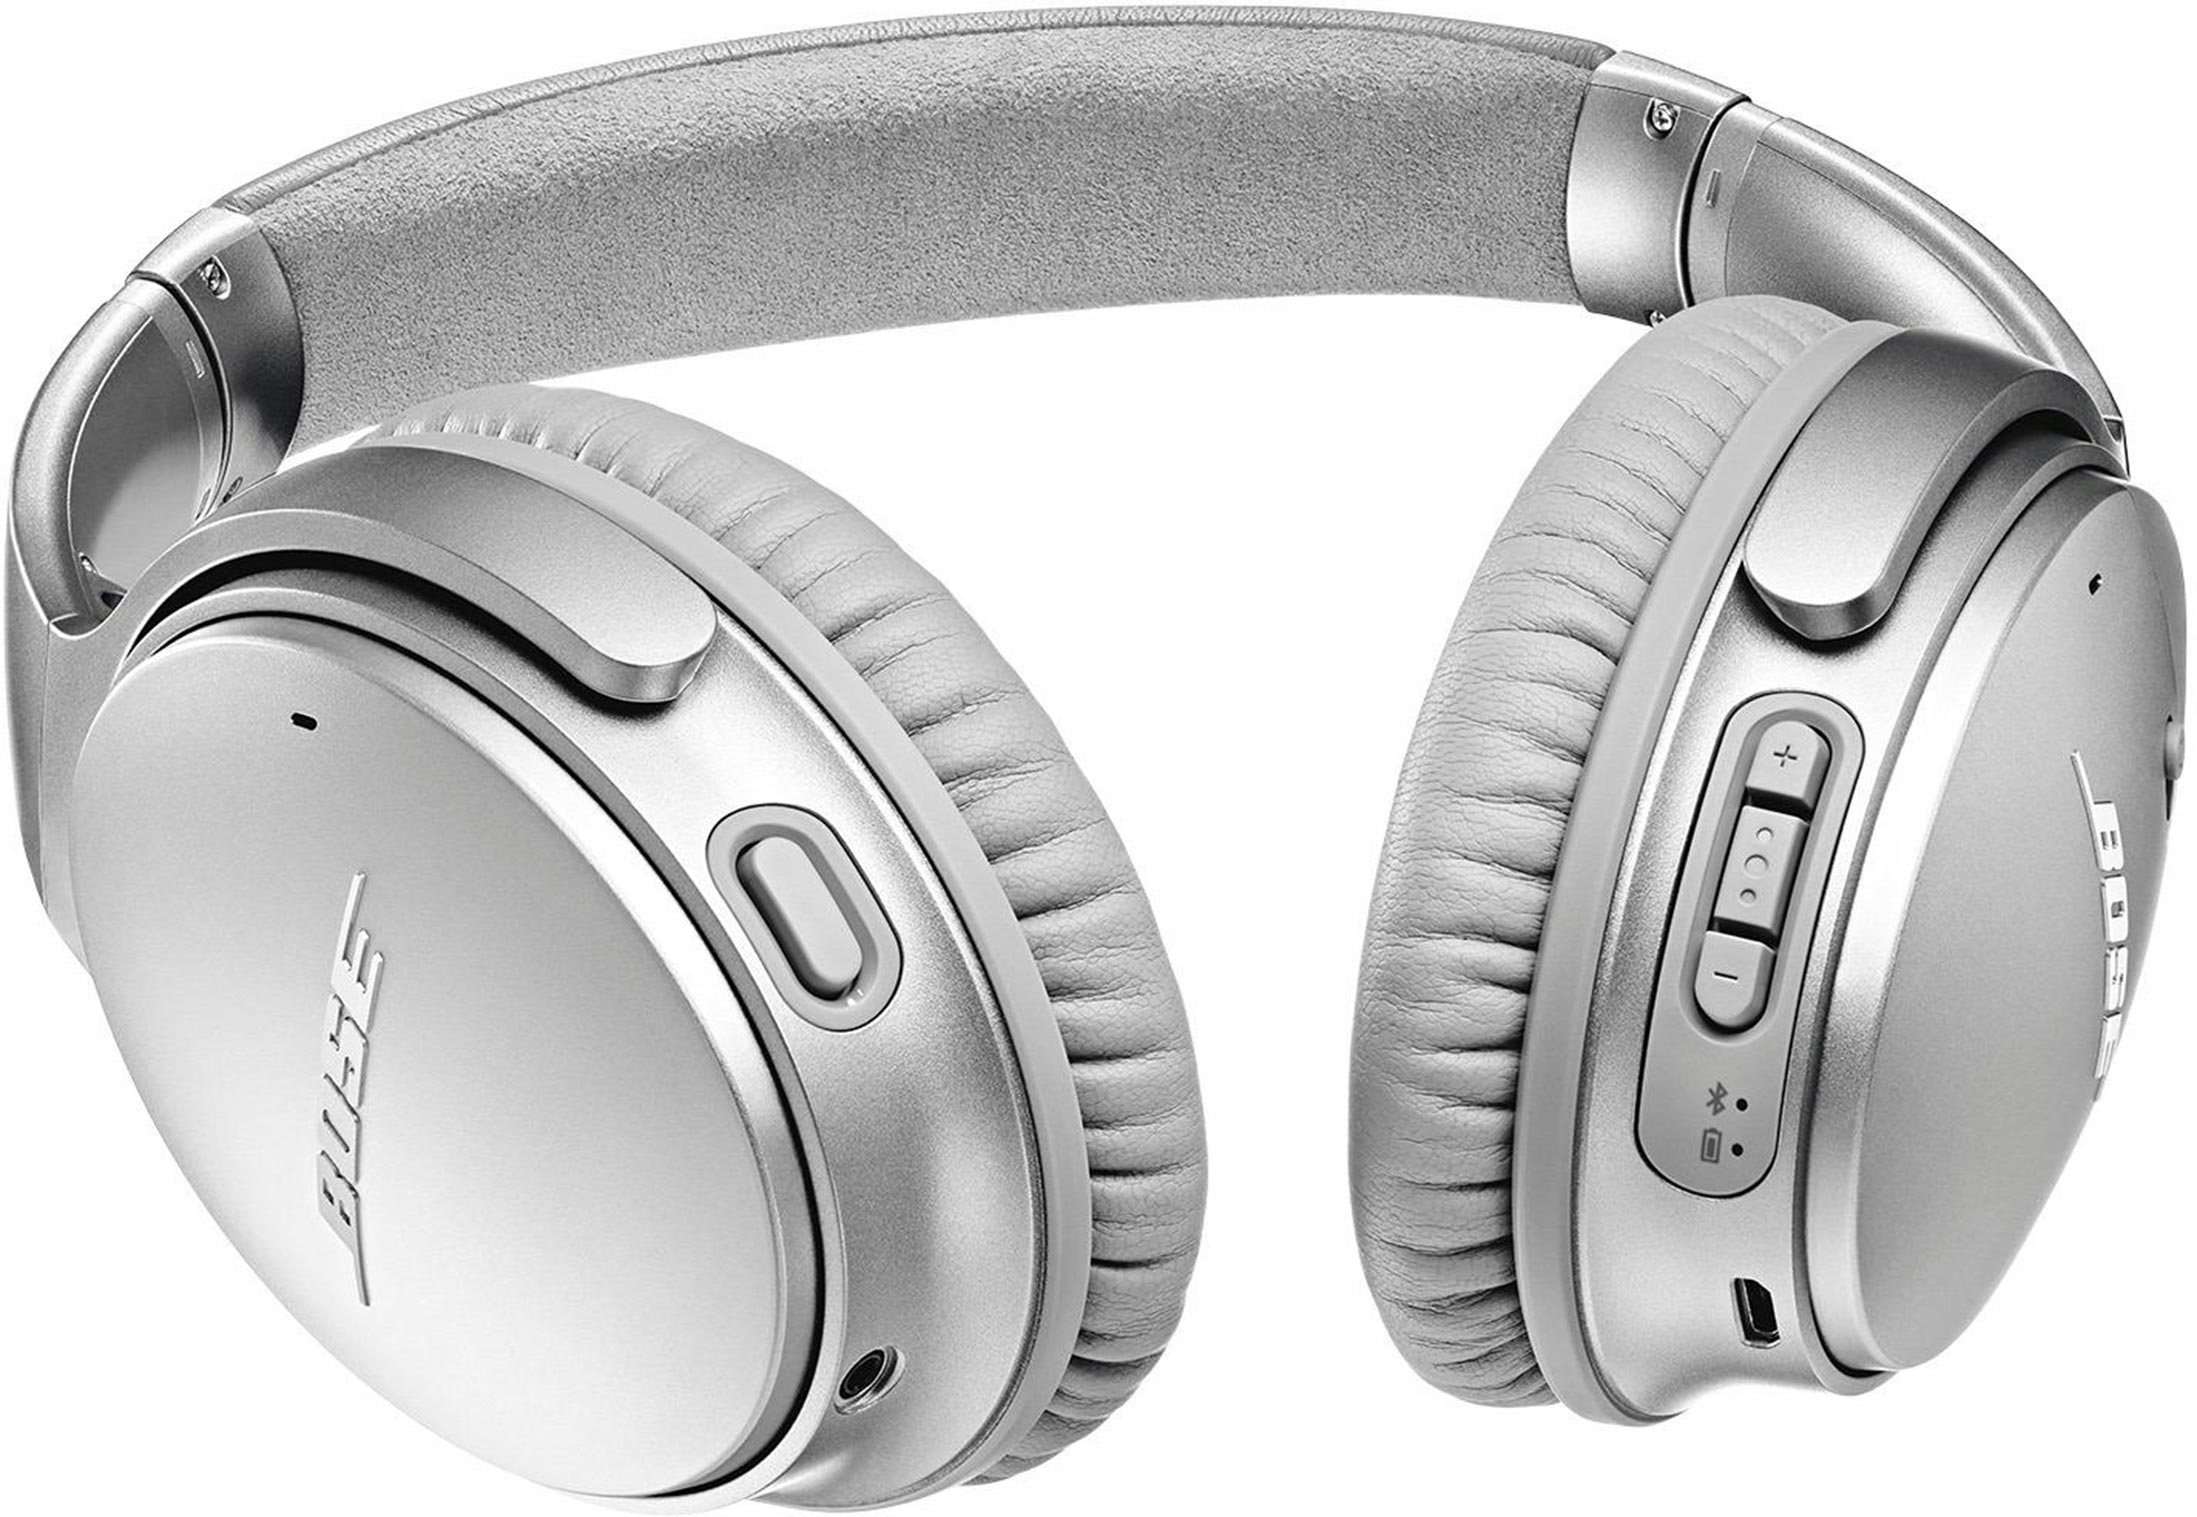 bose noise cancelling headphones 35. bose quietcomfort 35 ii headphones (silver) bose noise cancelling